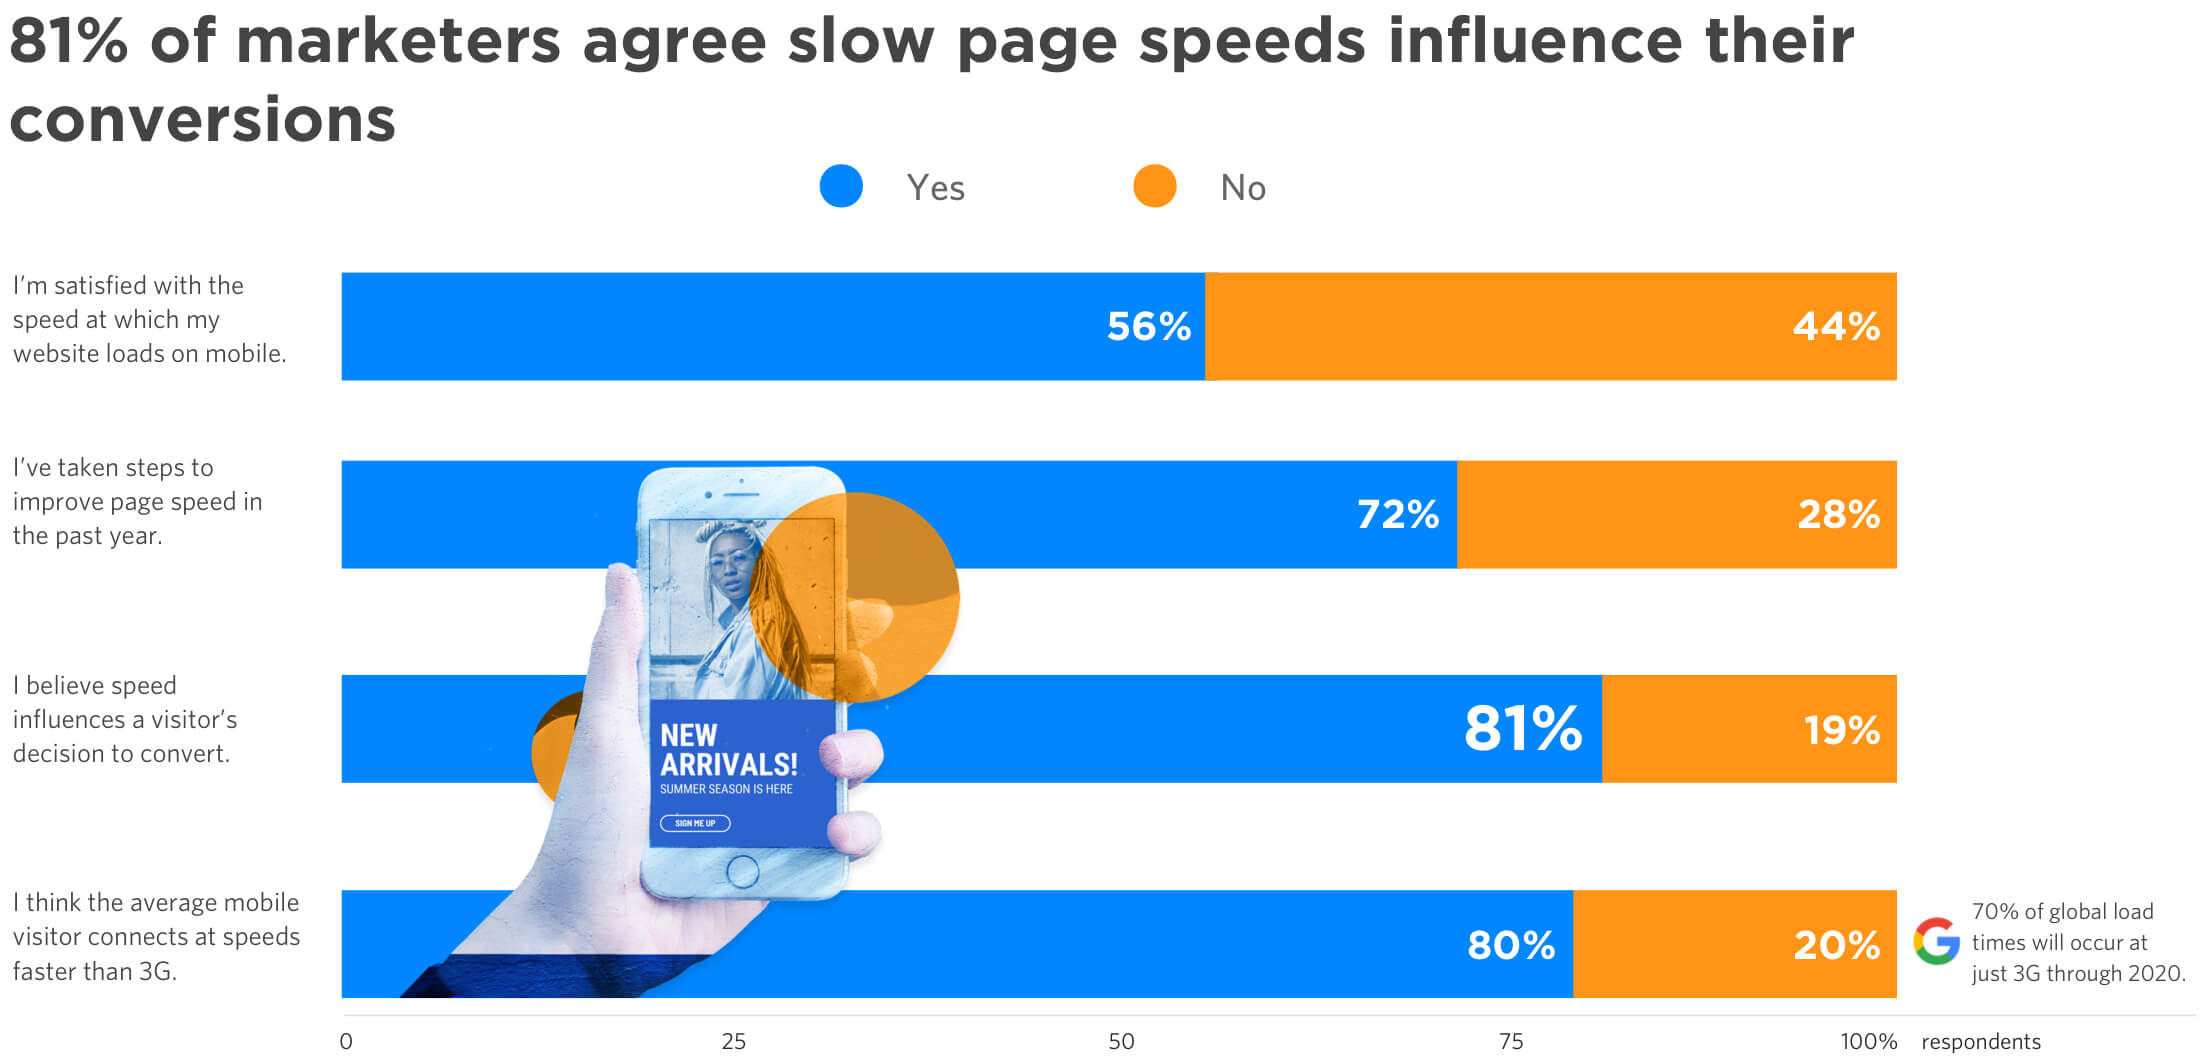 81 percent of marketers agree slow page speeds influence conversions